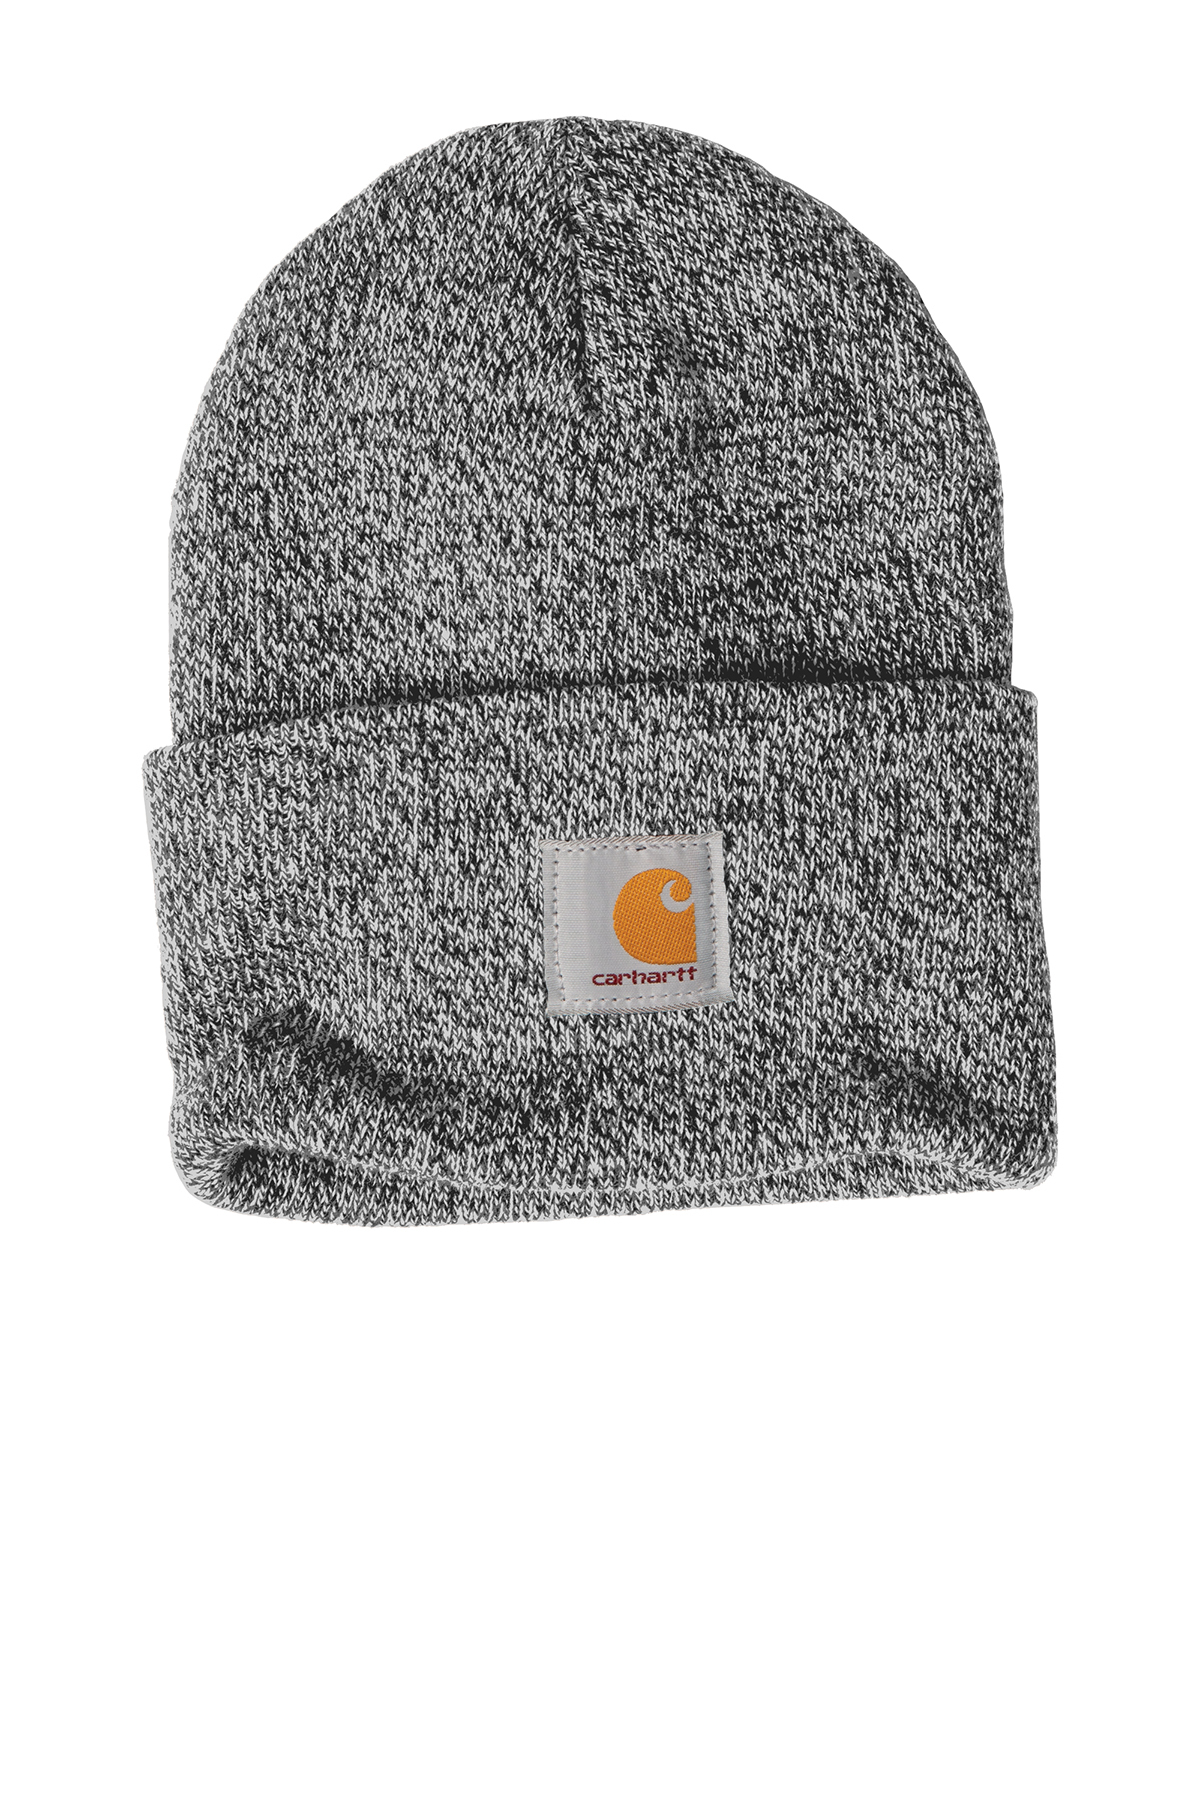 Carhartt® CTA18 - Acrylic Watch Hat